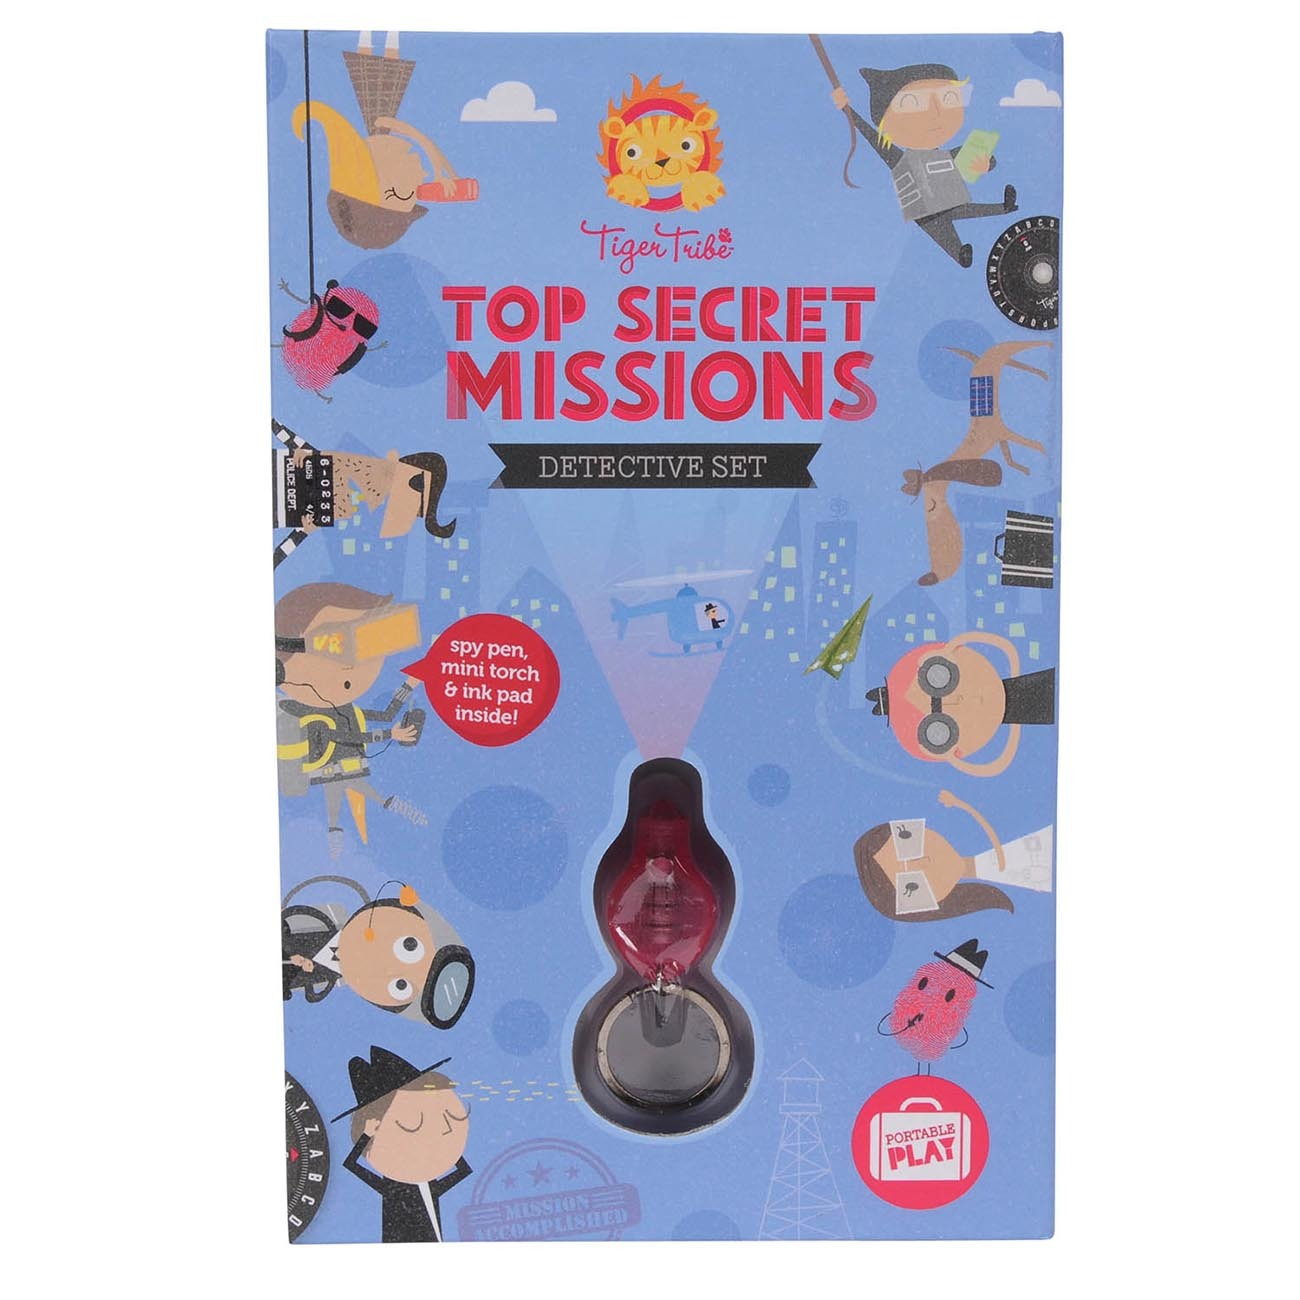 Tiger Tribe Top Secret Missions -Detective Set